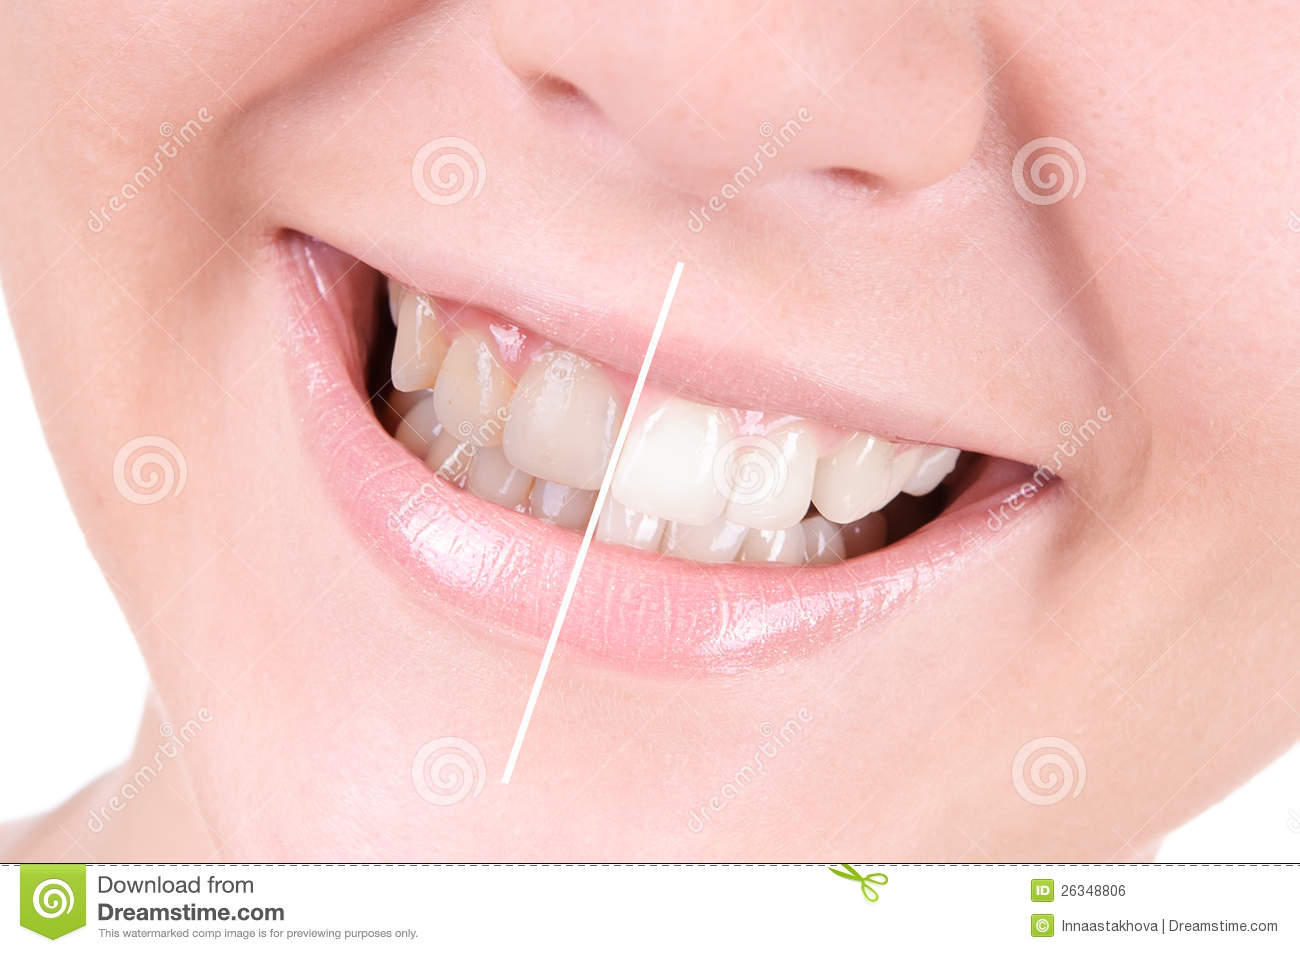 teeth-whitening-dental-care-26348806.jpg